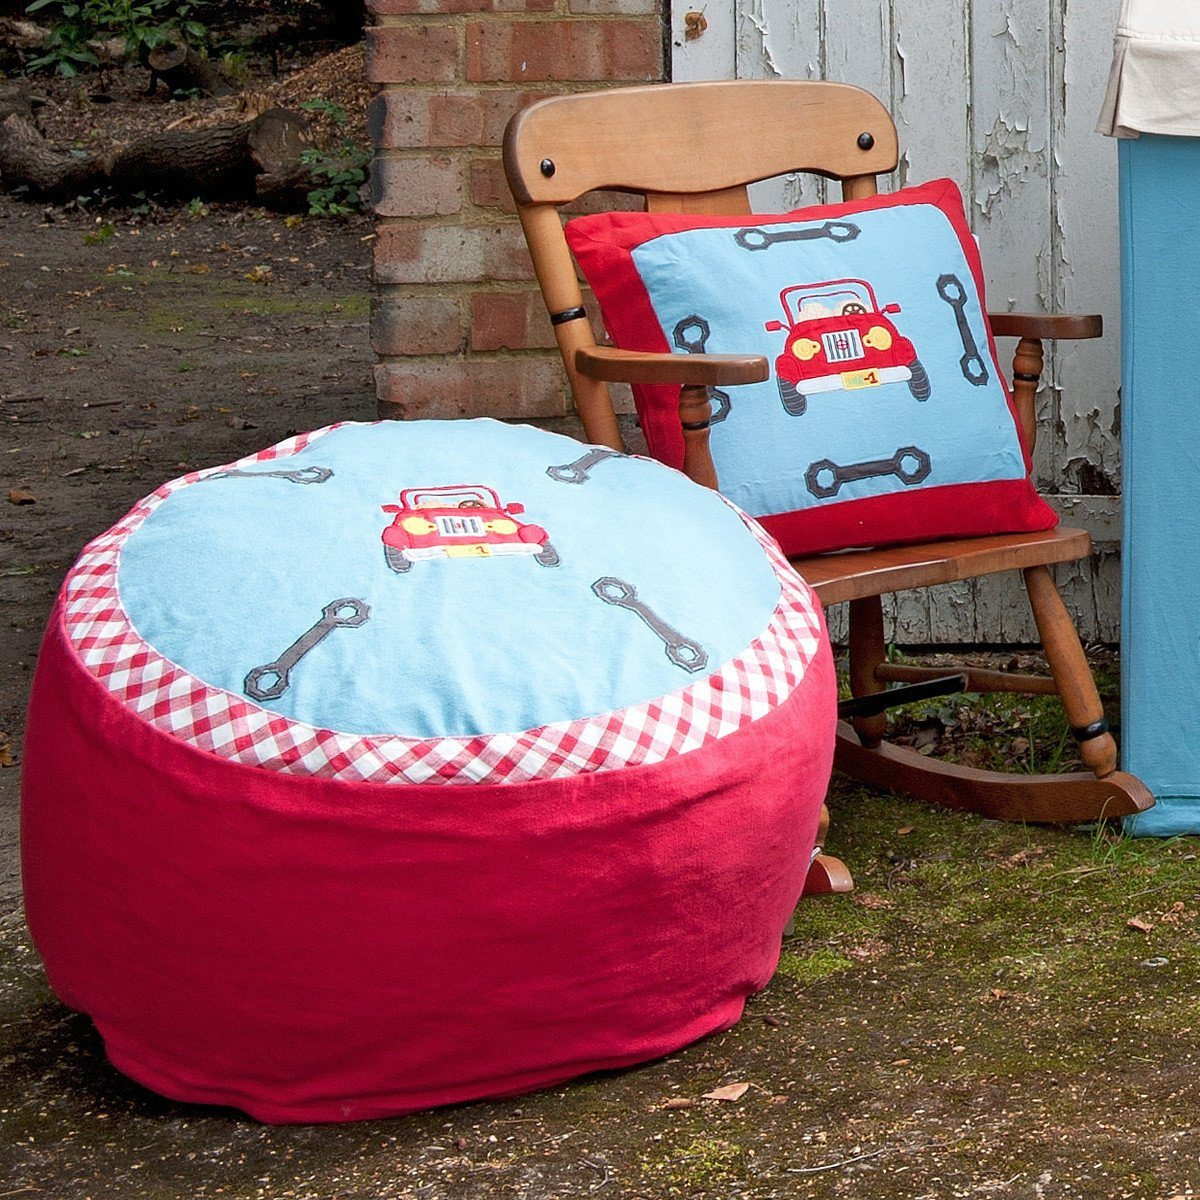 Garage Bean Bag - souzu.co.uk